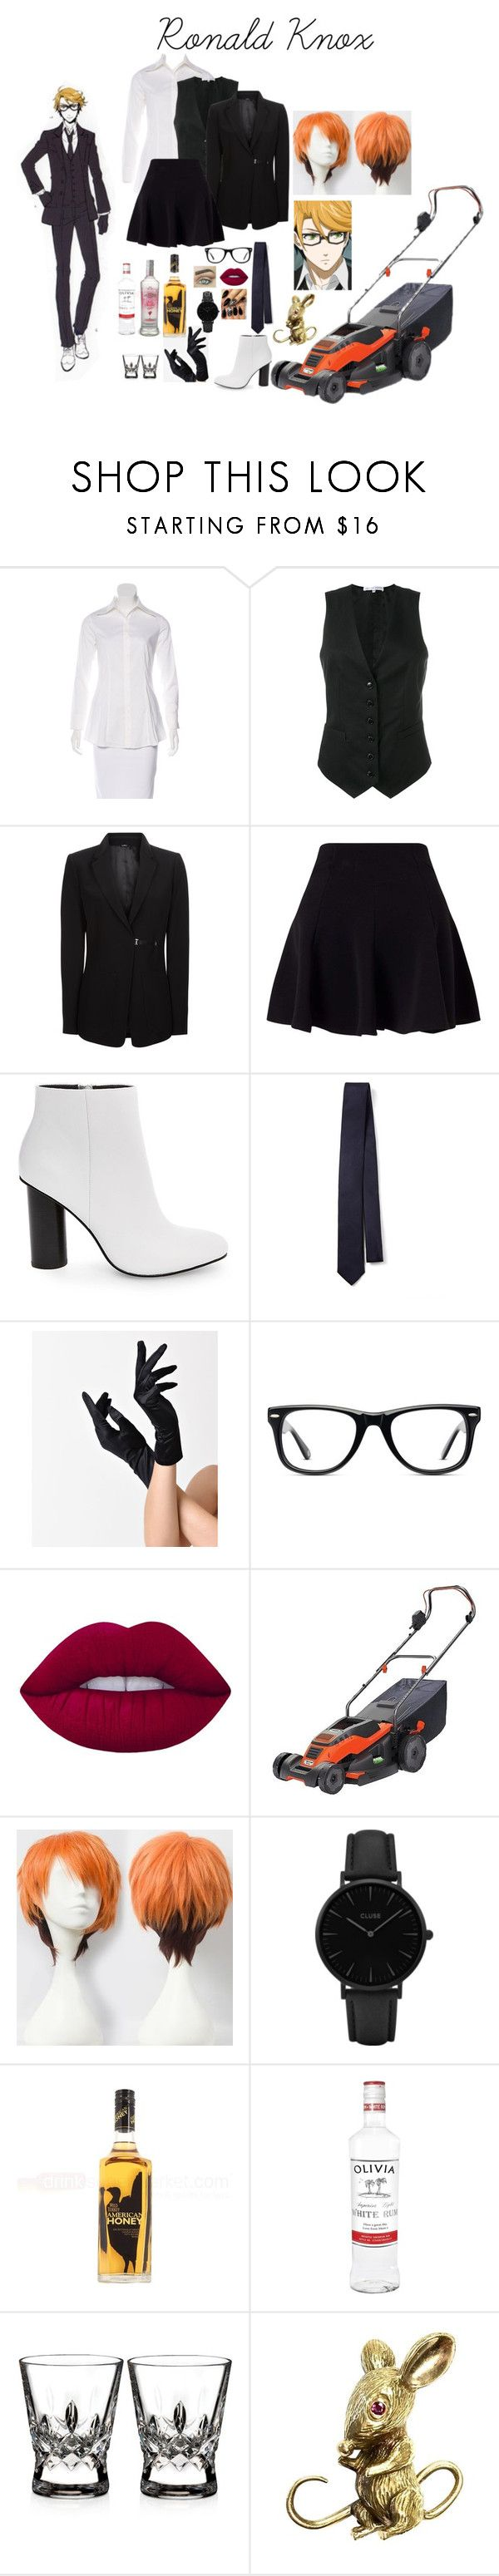 """""""Ronald Knox"""" by sugarontherug ❤ liked on Polyvore featuring Robert Rodriguez, Alexander Terekhov, Miss Selfridge, Steve Madden, Joseph, Muse, Lime Crime, Black & Decker, CLUSE and Waterford"""